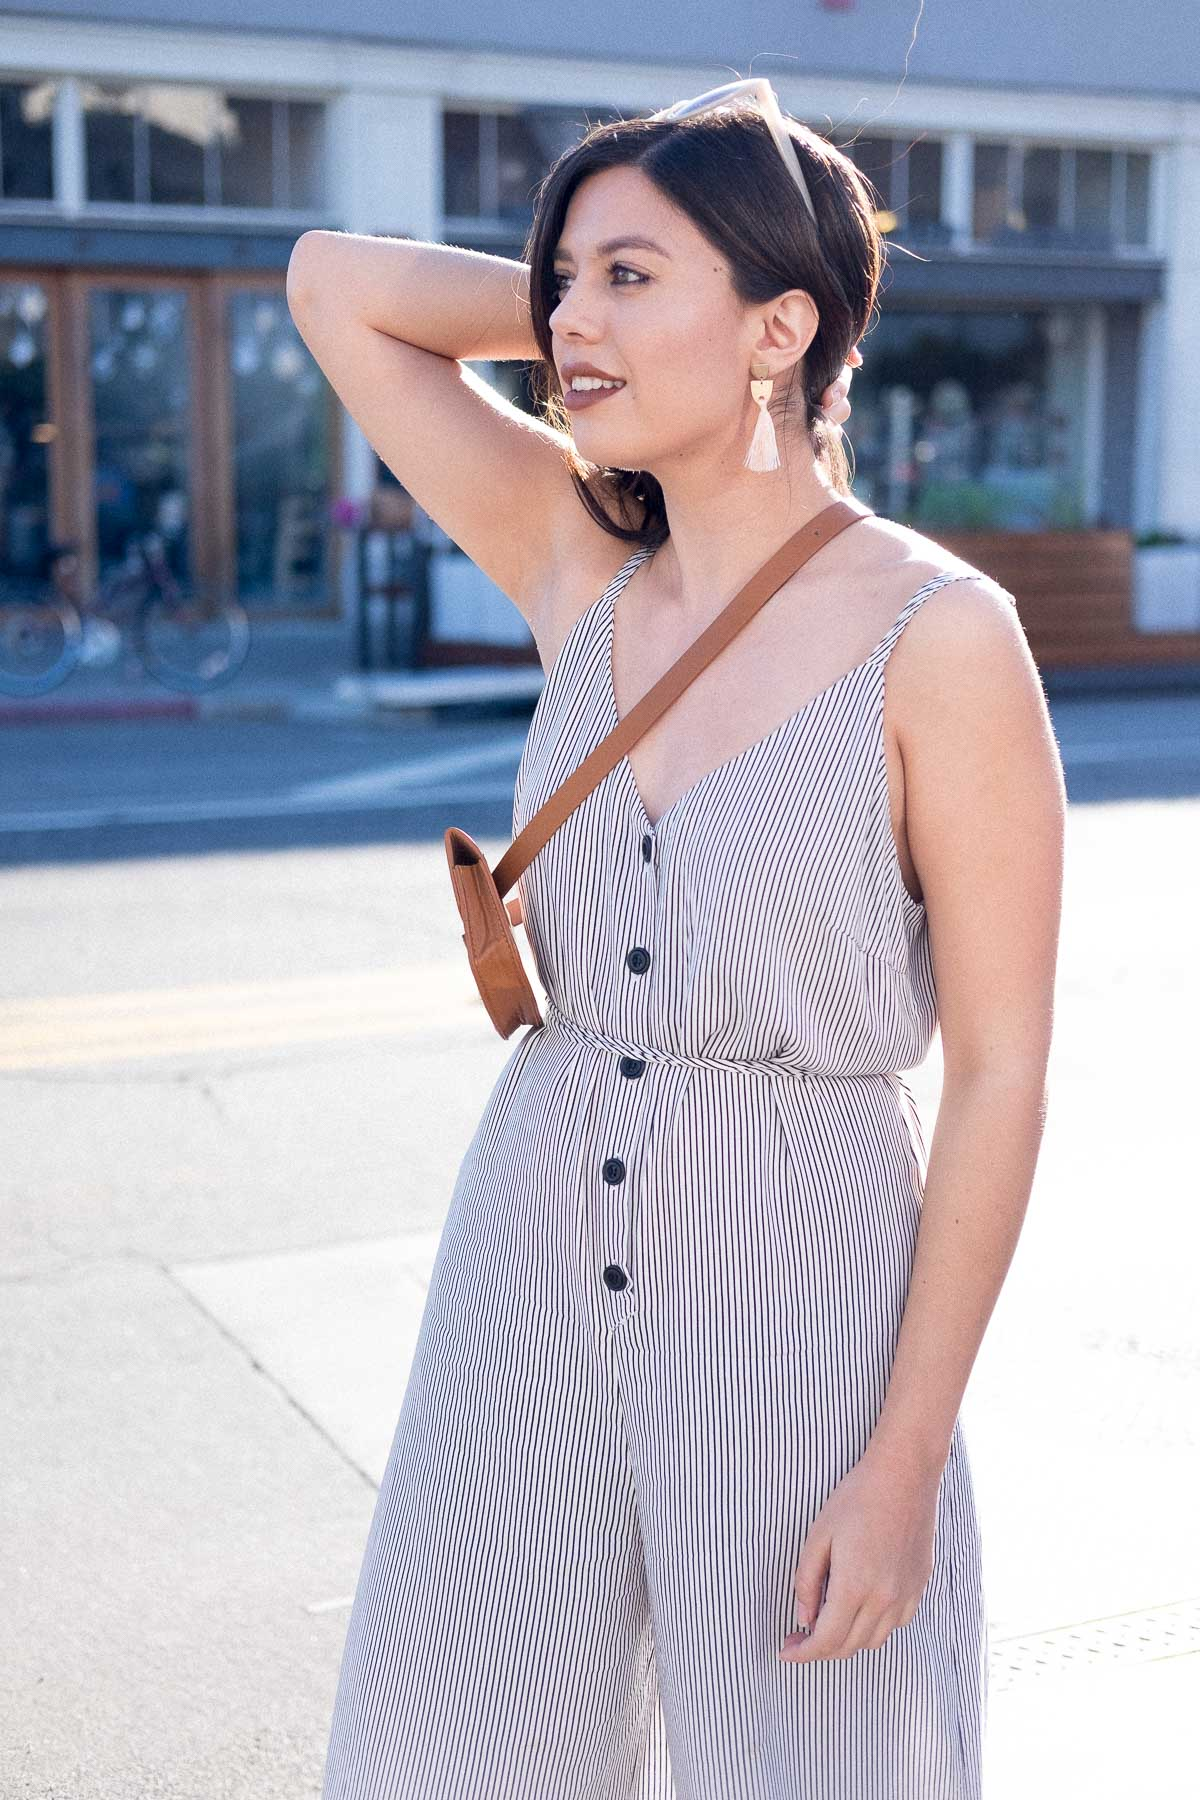 Rachel Off Duty: How to Start Networking - Jumpsuit Outfit 3